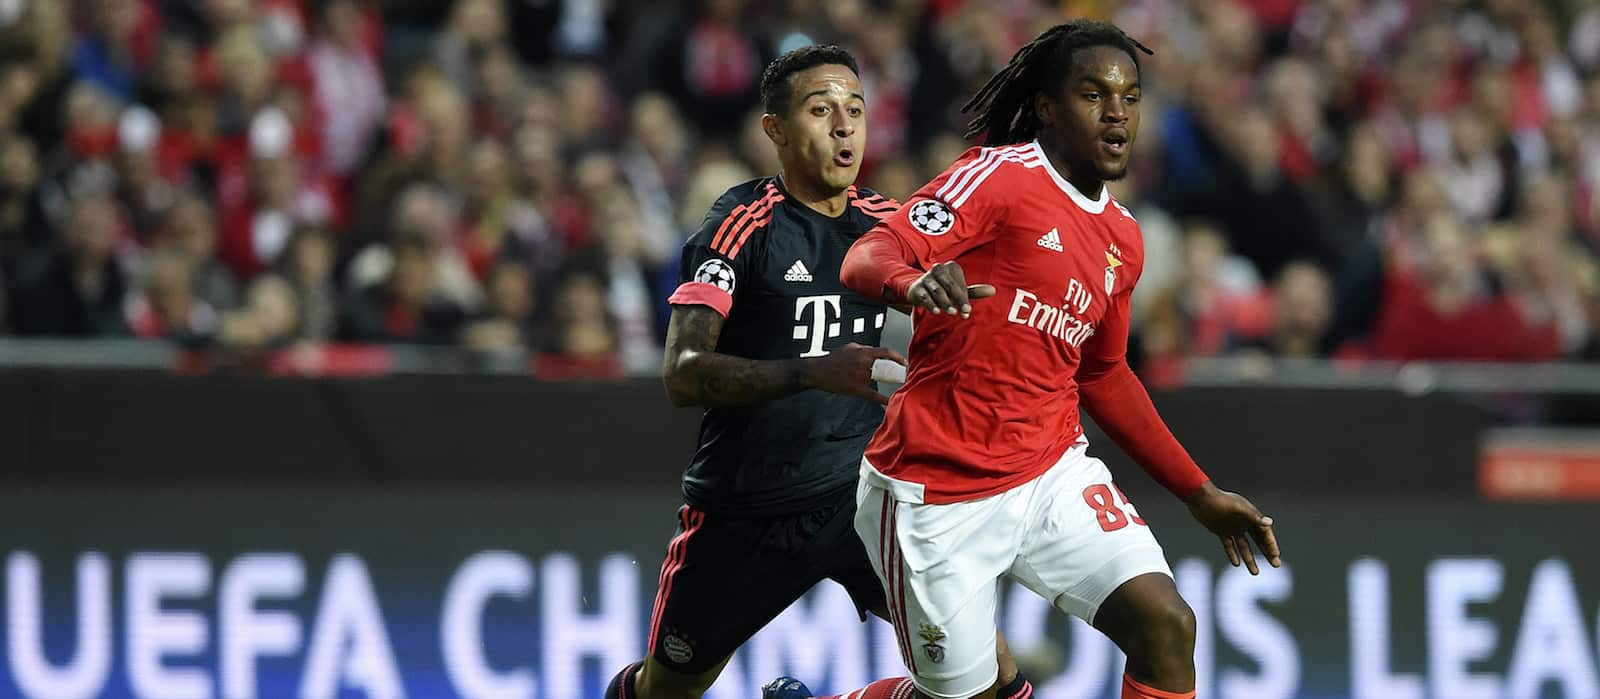 Man United on verge of closing deal for Bayern Munich's Renato Sanches – report